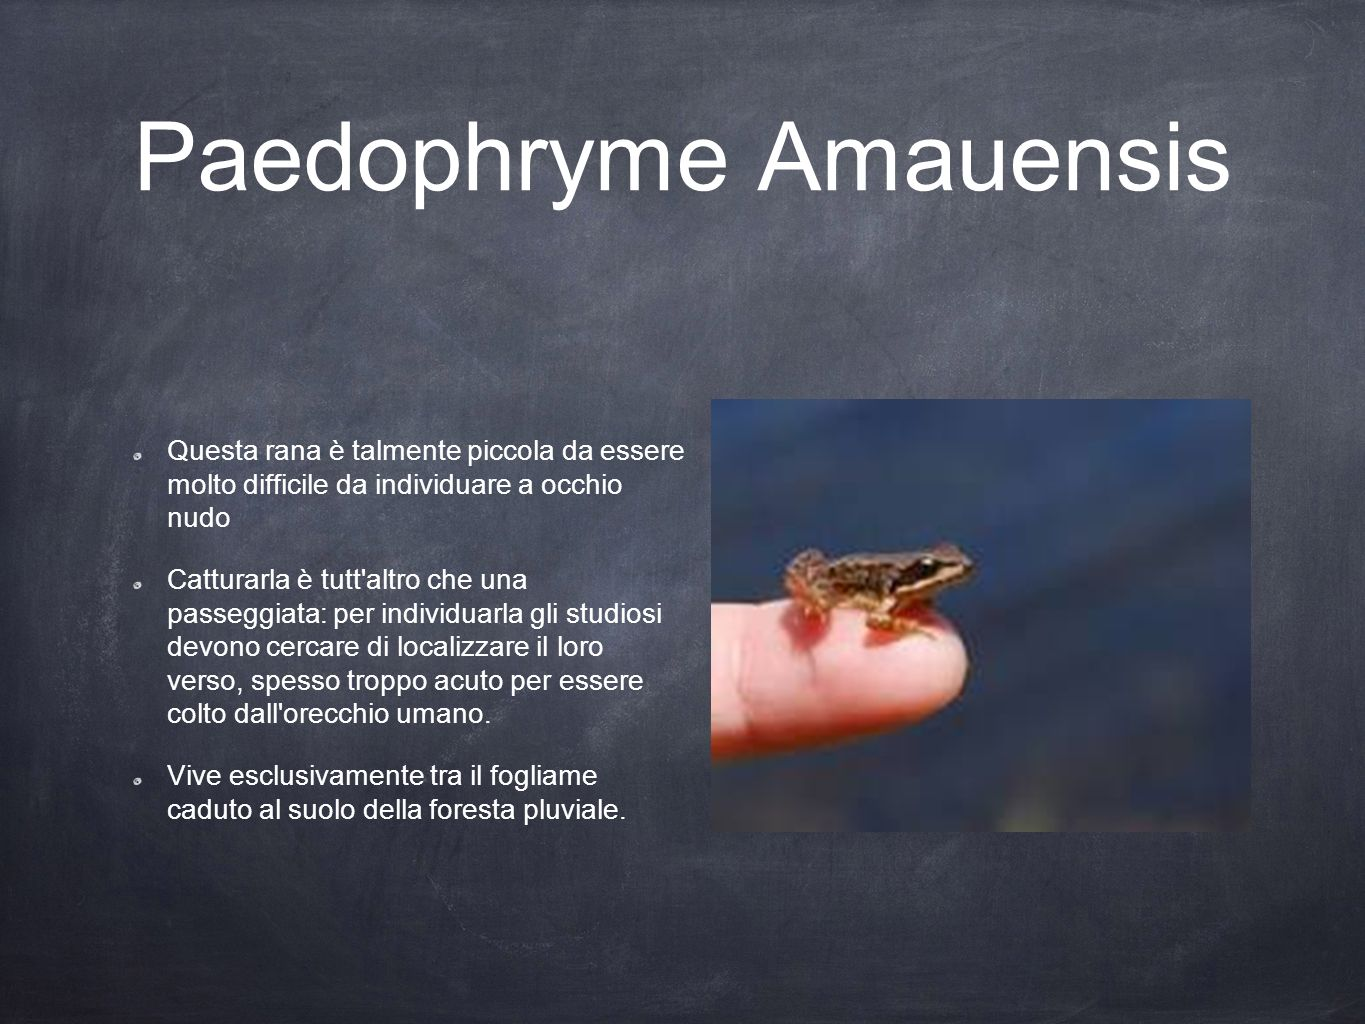 Paedophryme Amauensis